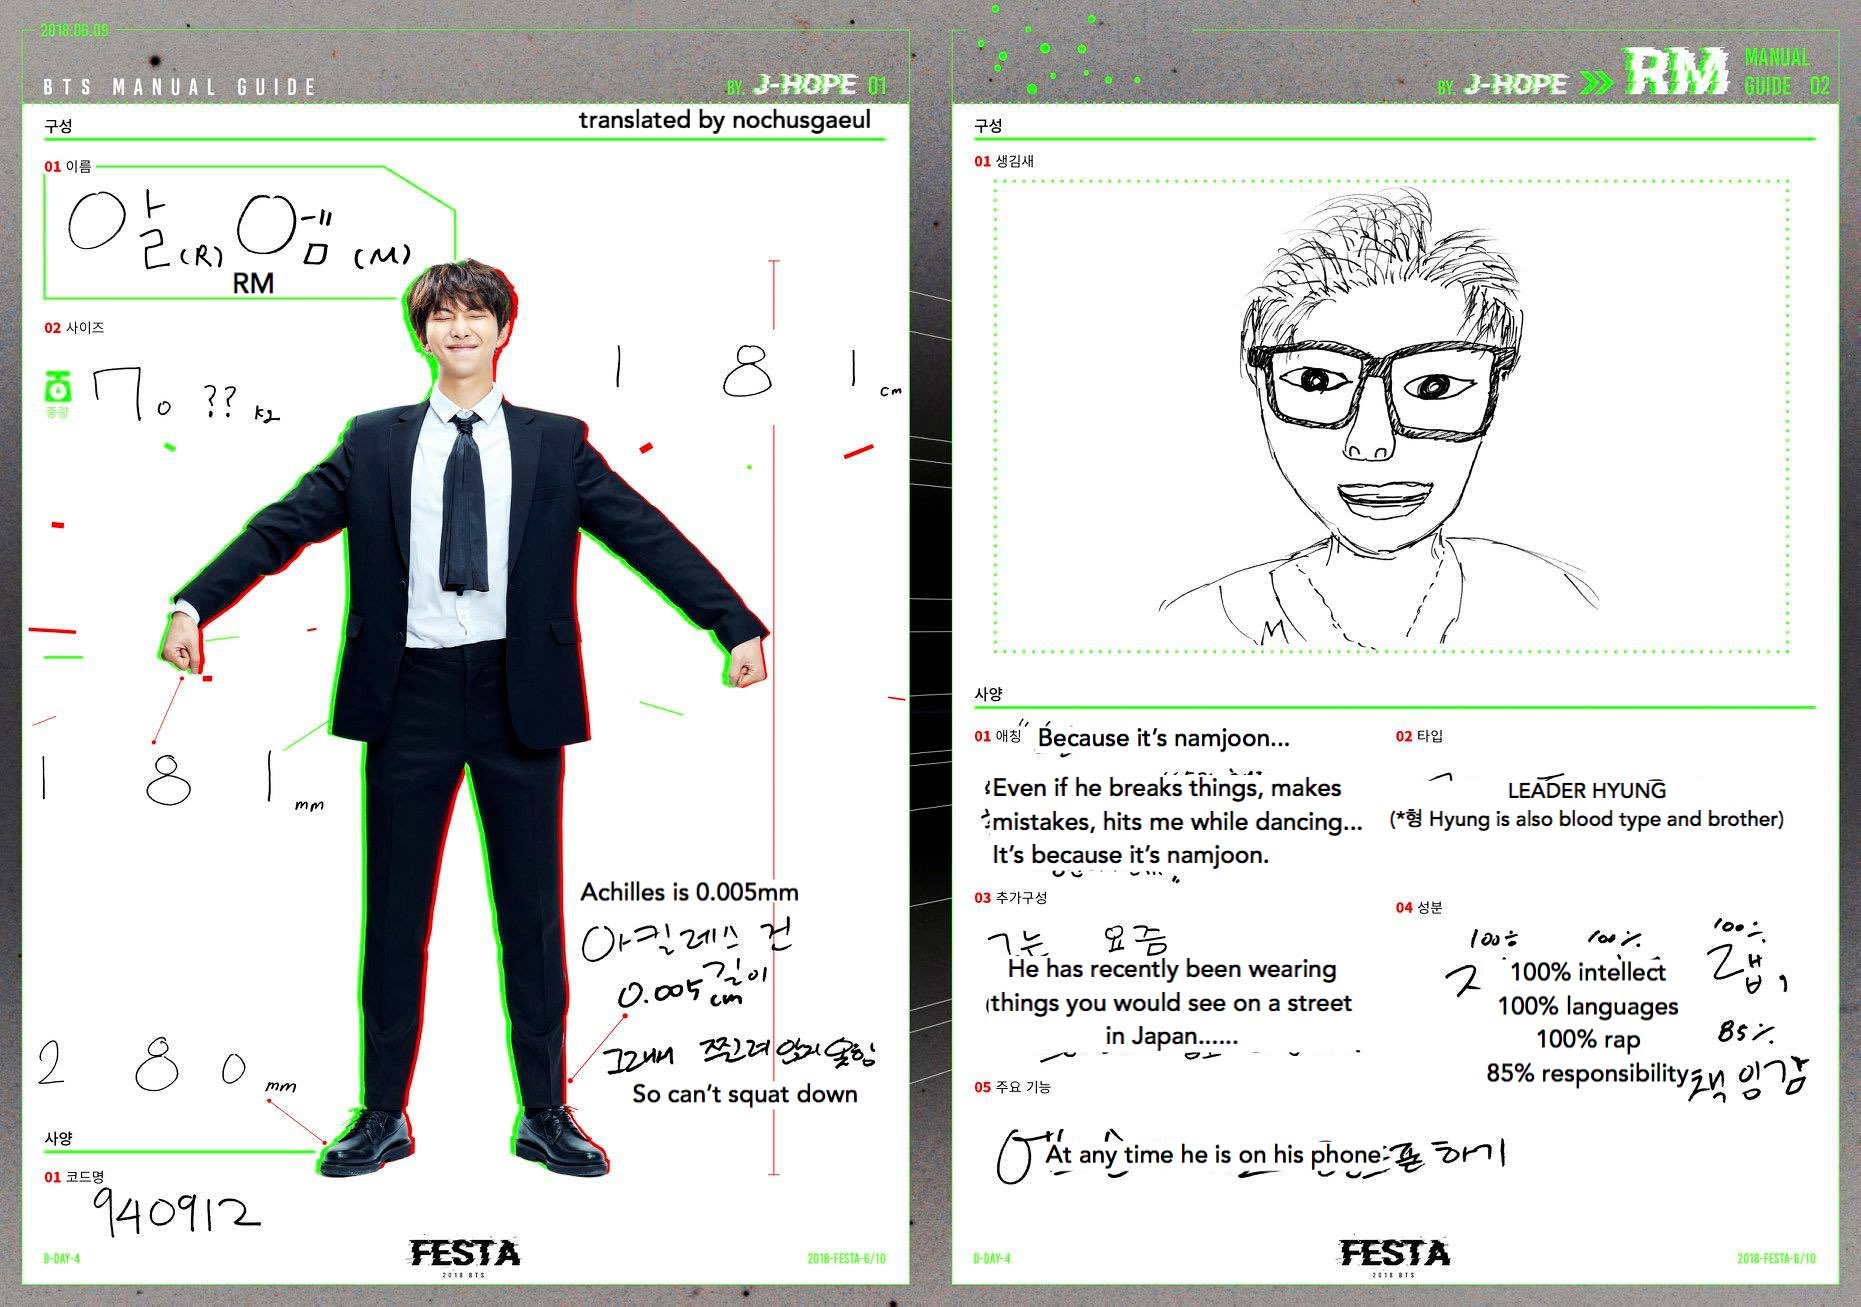 d6ex dfnbnf4x4aa 58r - [Picture] 2018 BTS FESTA : BTS MANUAL GUIDE [180809]